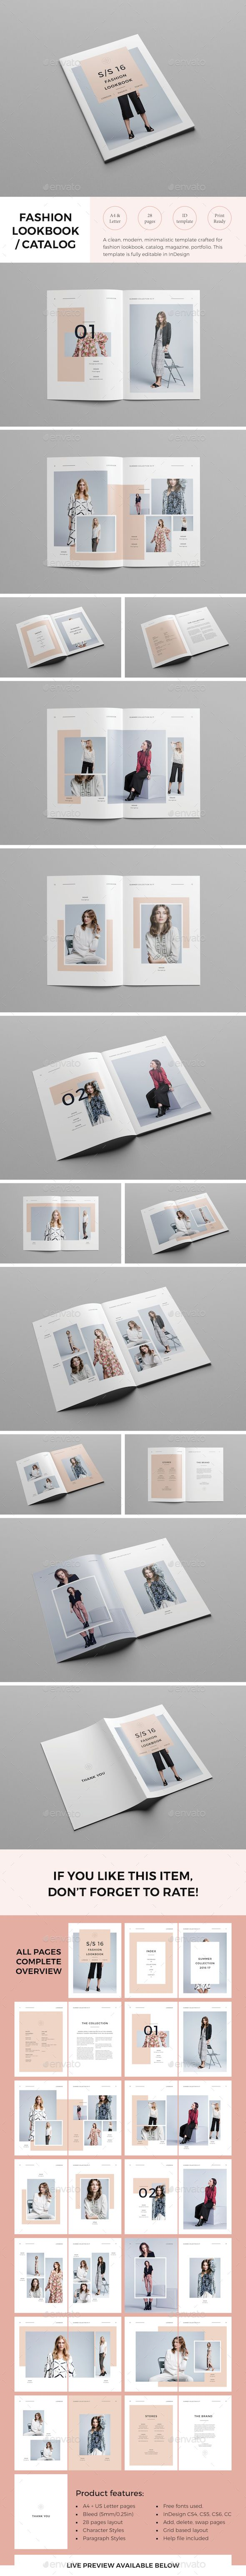 Lookbook Template - Catalogs Brochures                                                                                                                                                                                 More